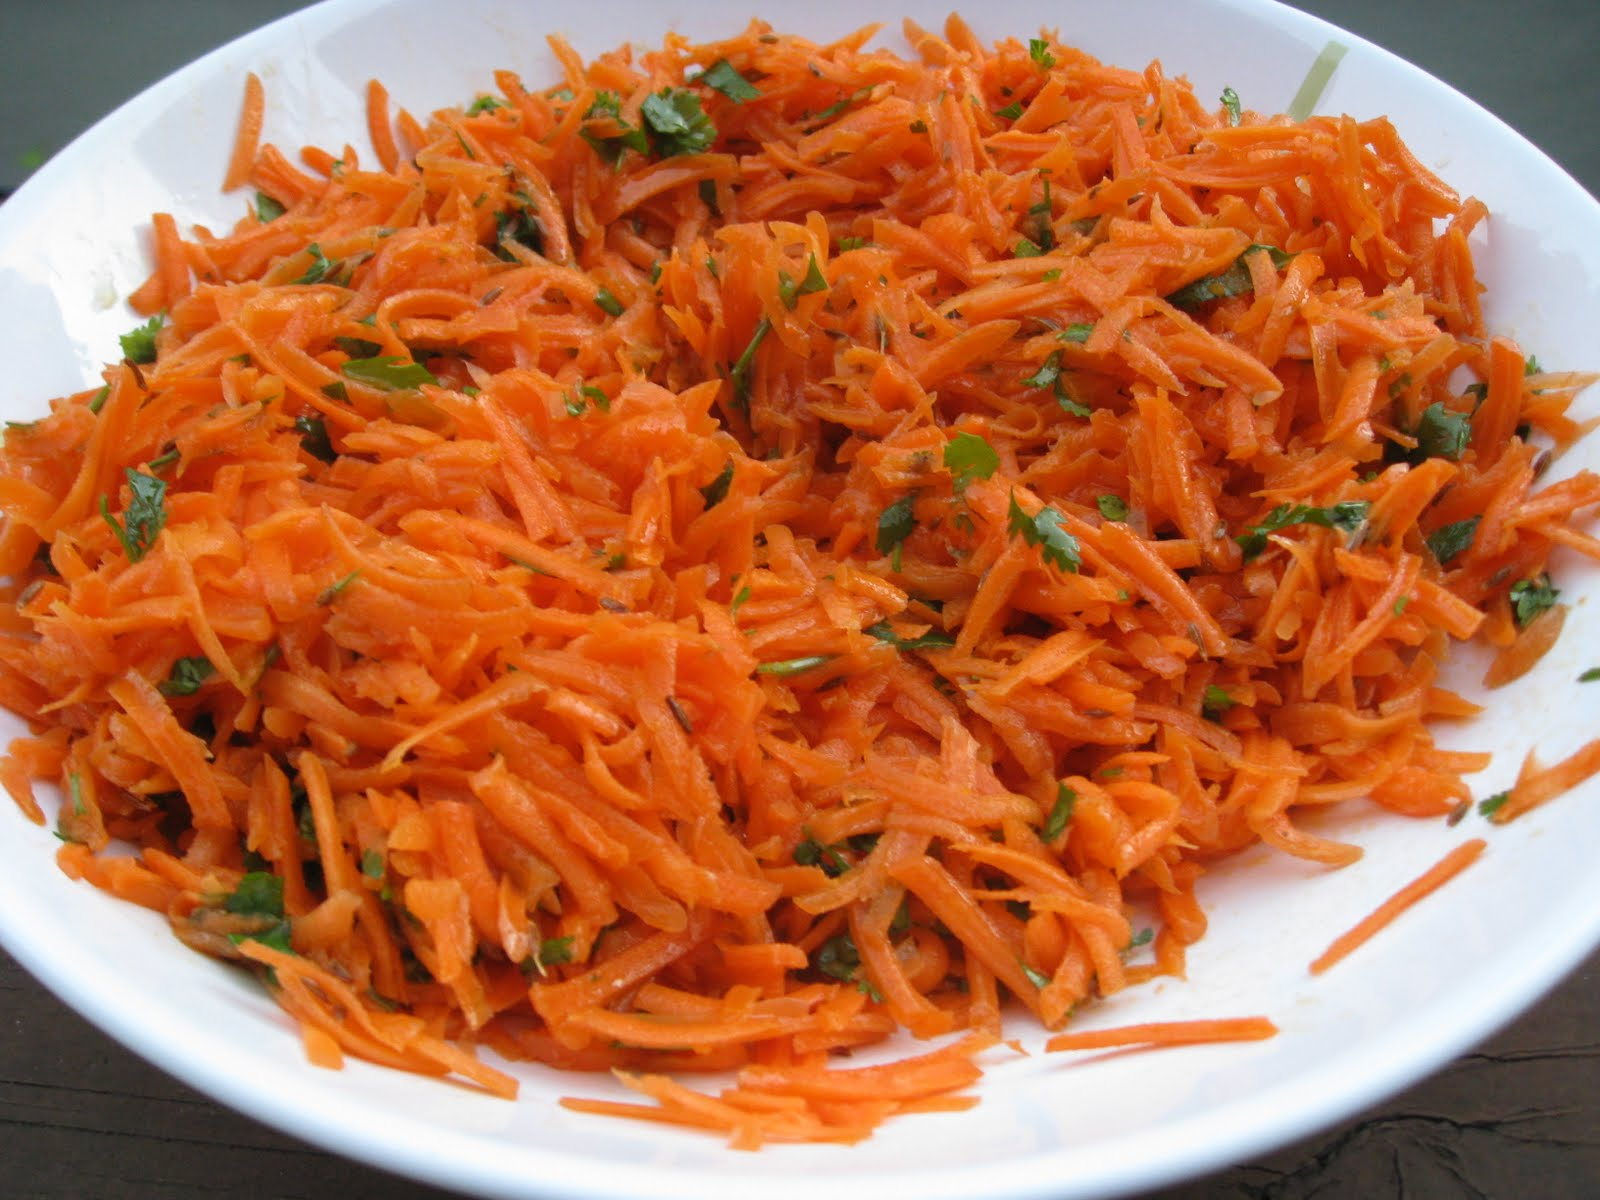 Apple Carrot Salad With Cilantro Recipes — Dishmaps